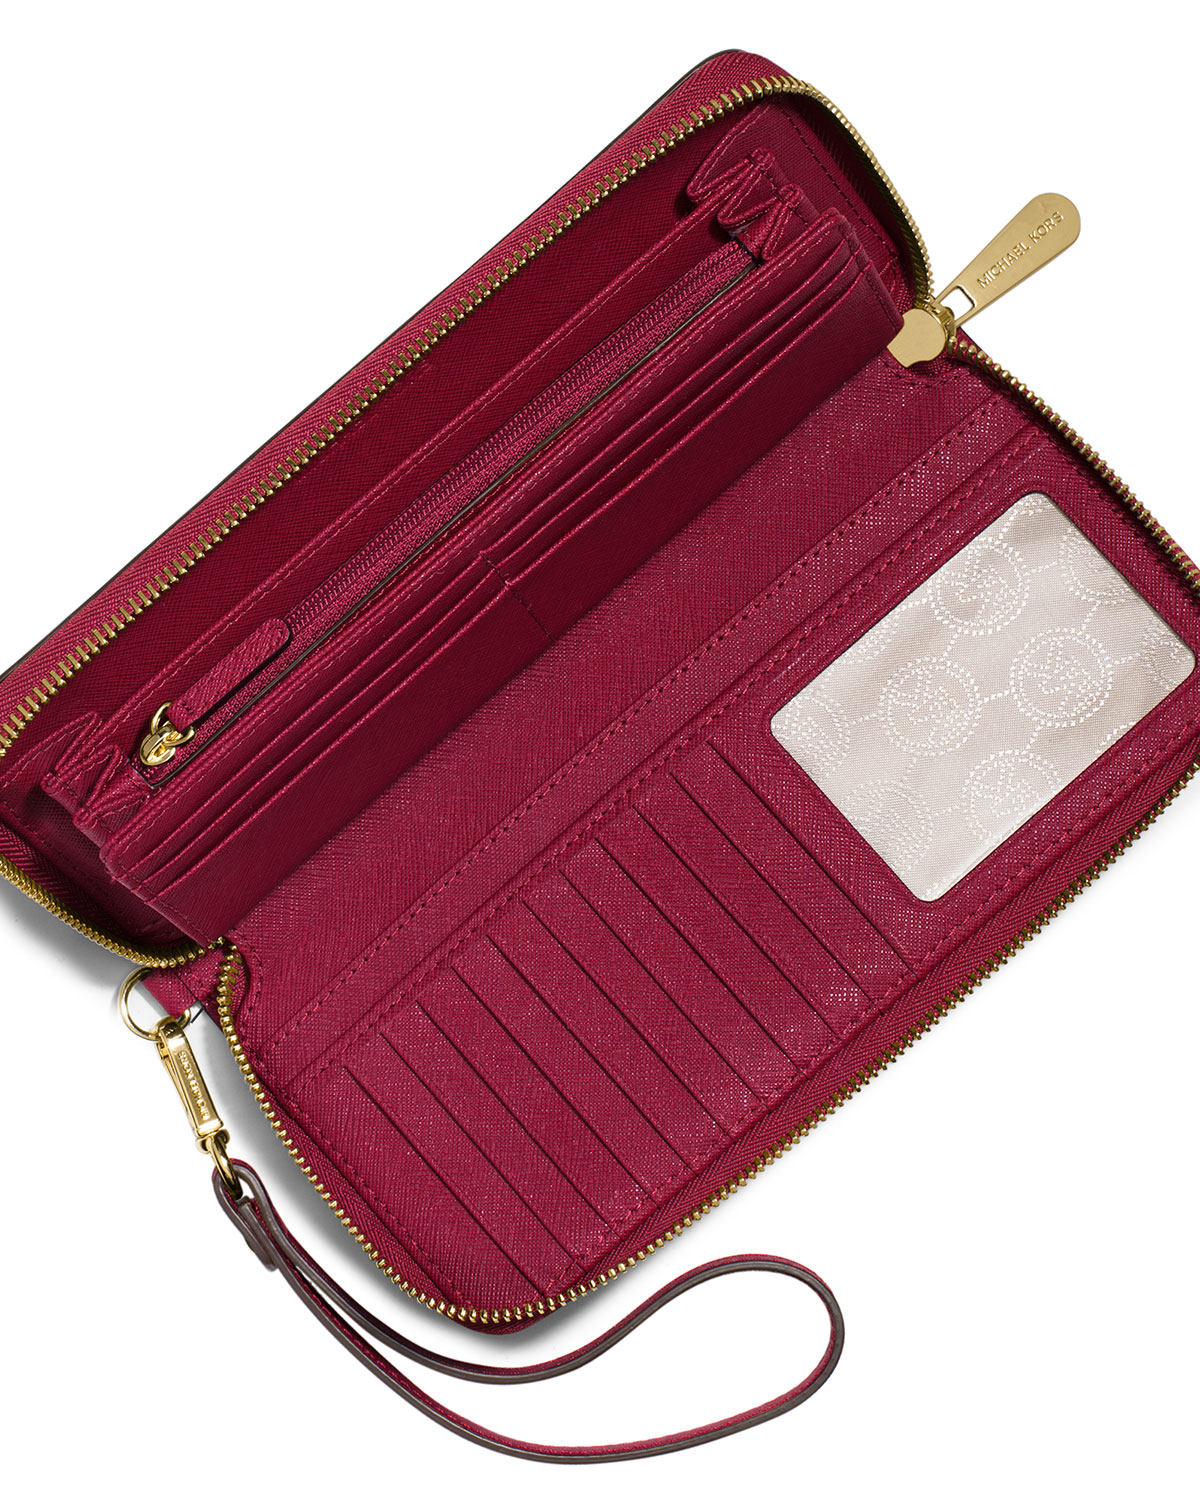 1951895555e9 Michael Kors Jet Set Wallet Red - Best Photo Wallet Justiceforkenny.Org